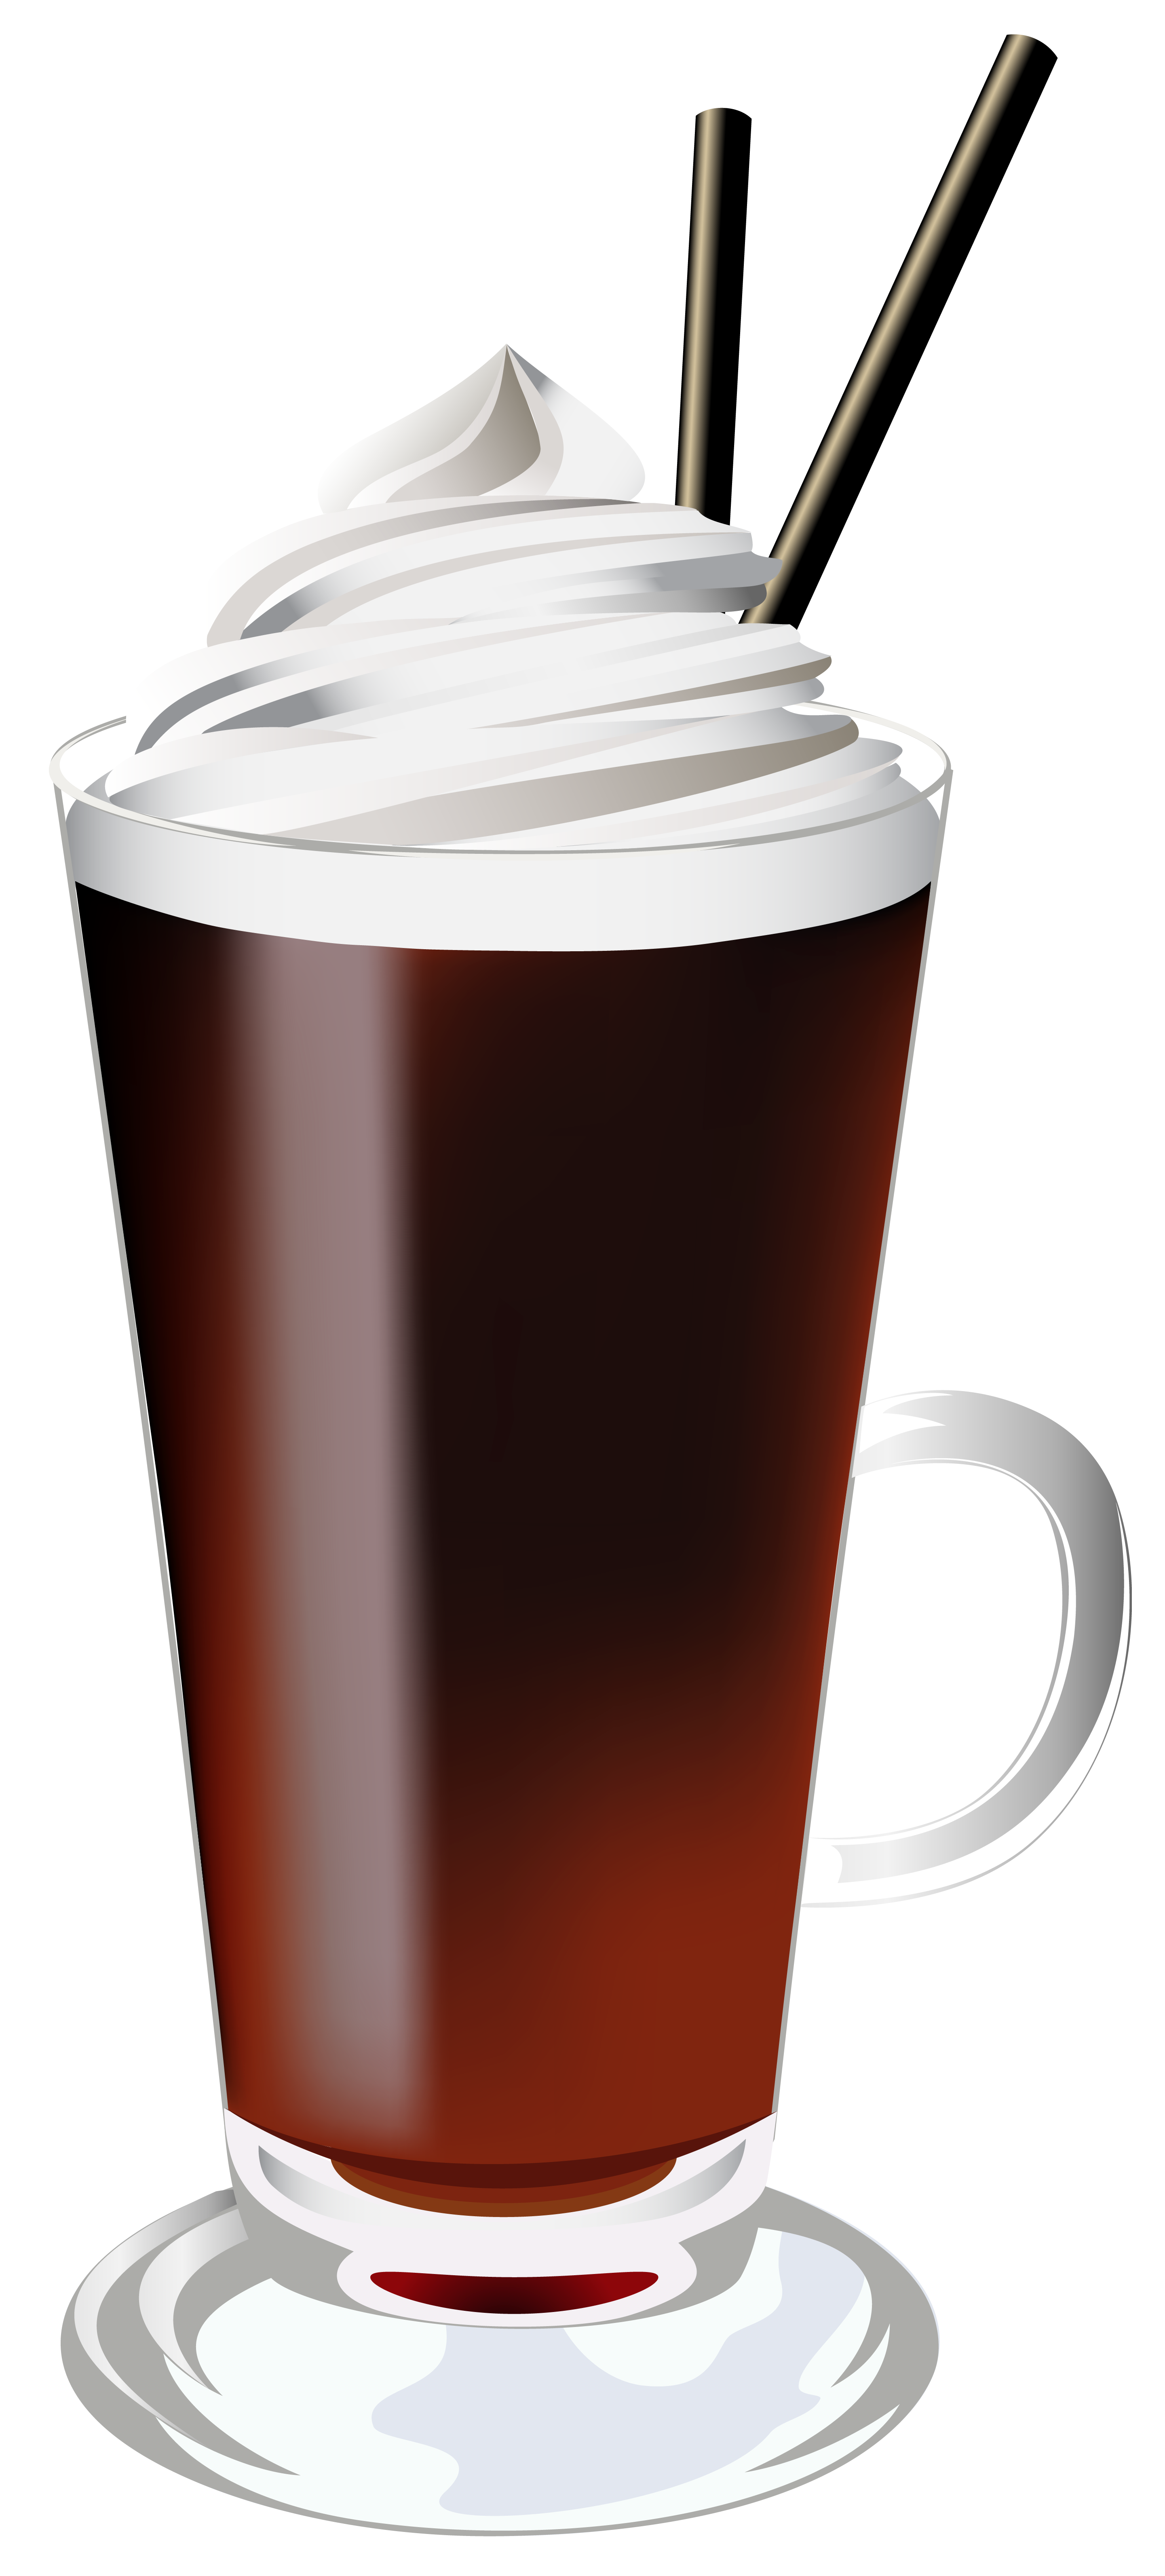 Drinks clipart drink coffee. Cocktail png image gallery